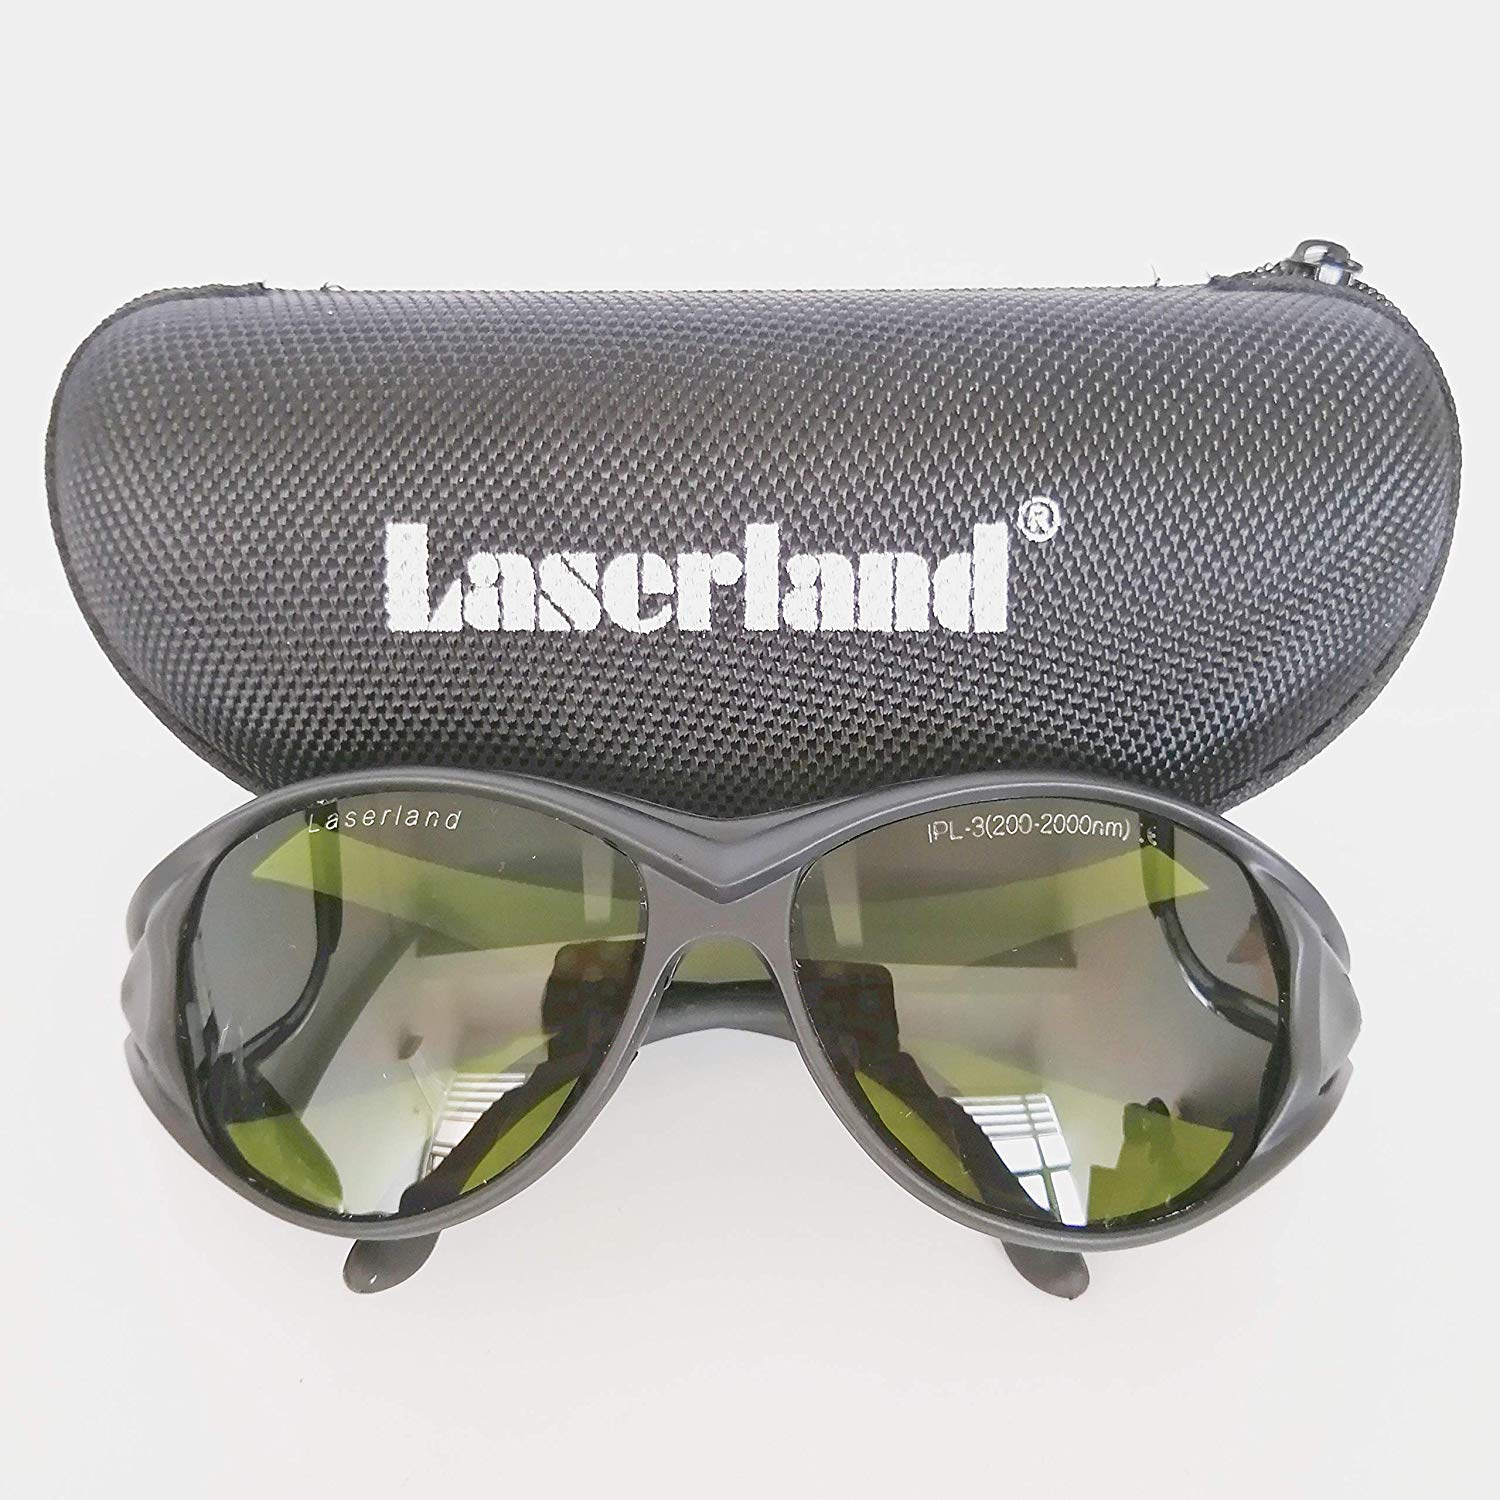 9ab3b46c20a Get Quotations · Laserland SK-5-2 CE certificated IPL Safety Glasses 200-1400nm  Protection Glasses